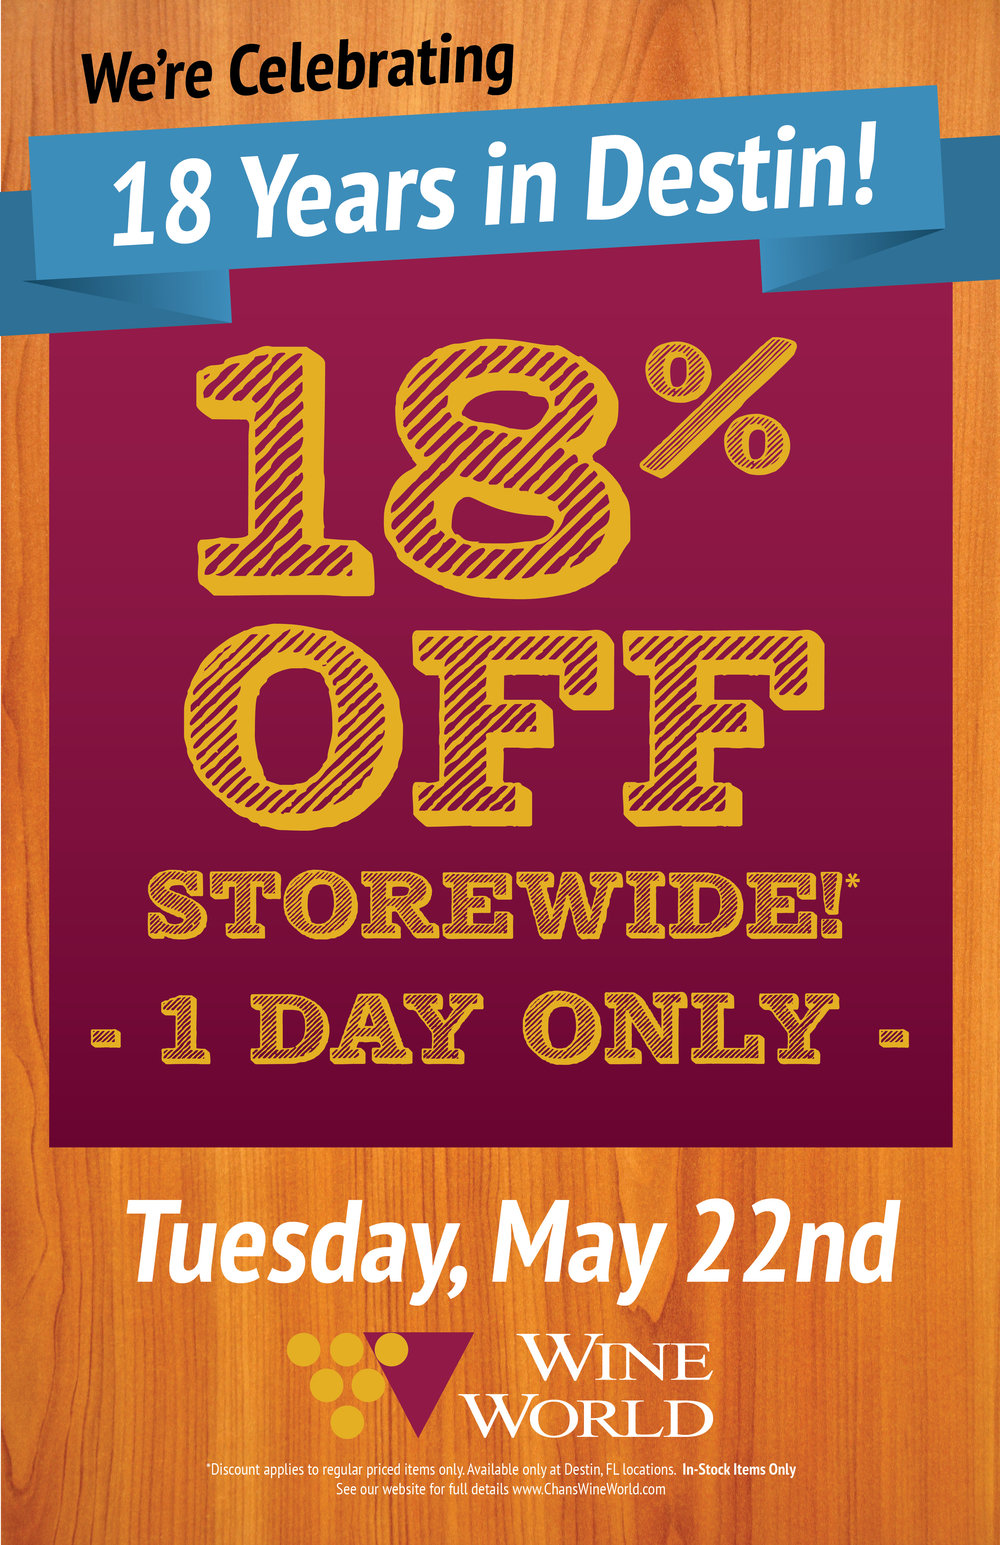 **VALID IN DESTIN LOCATION ONLY. 05/22/2018. In-stock, regularly priced items only. No rain checks. Cannot be combined with other offers or discounts. Glass of wine as part of a buy-one-get-one offer. Not valid without proof of retail purchase on 05/22/18. Some exclusions may apply.